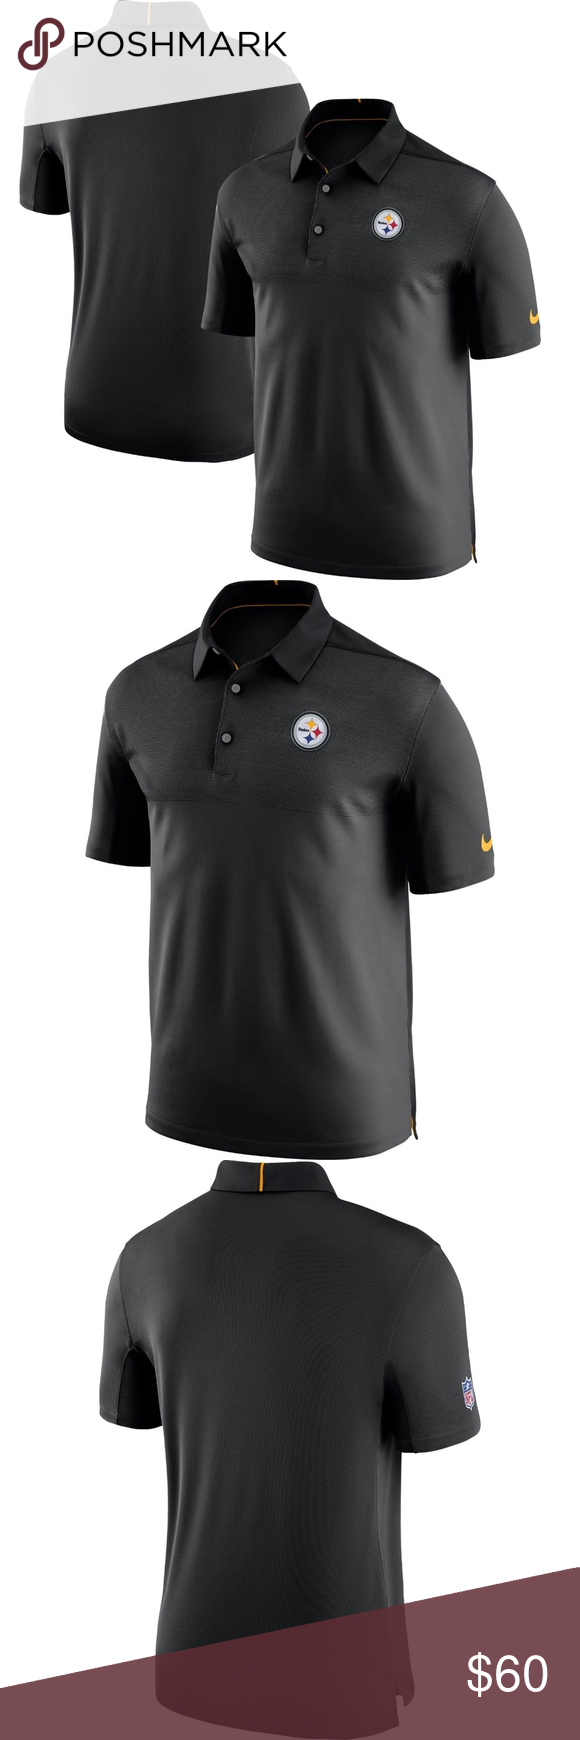 e3528d053 Nike Pittsburgh Steelers Performance Polo Shirt XL Material  95%  Polyester 5% Spandex